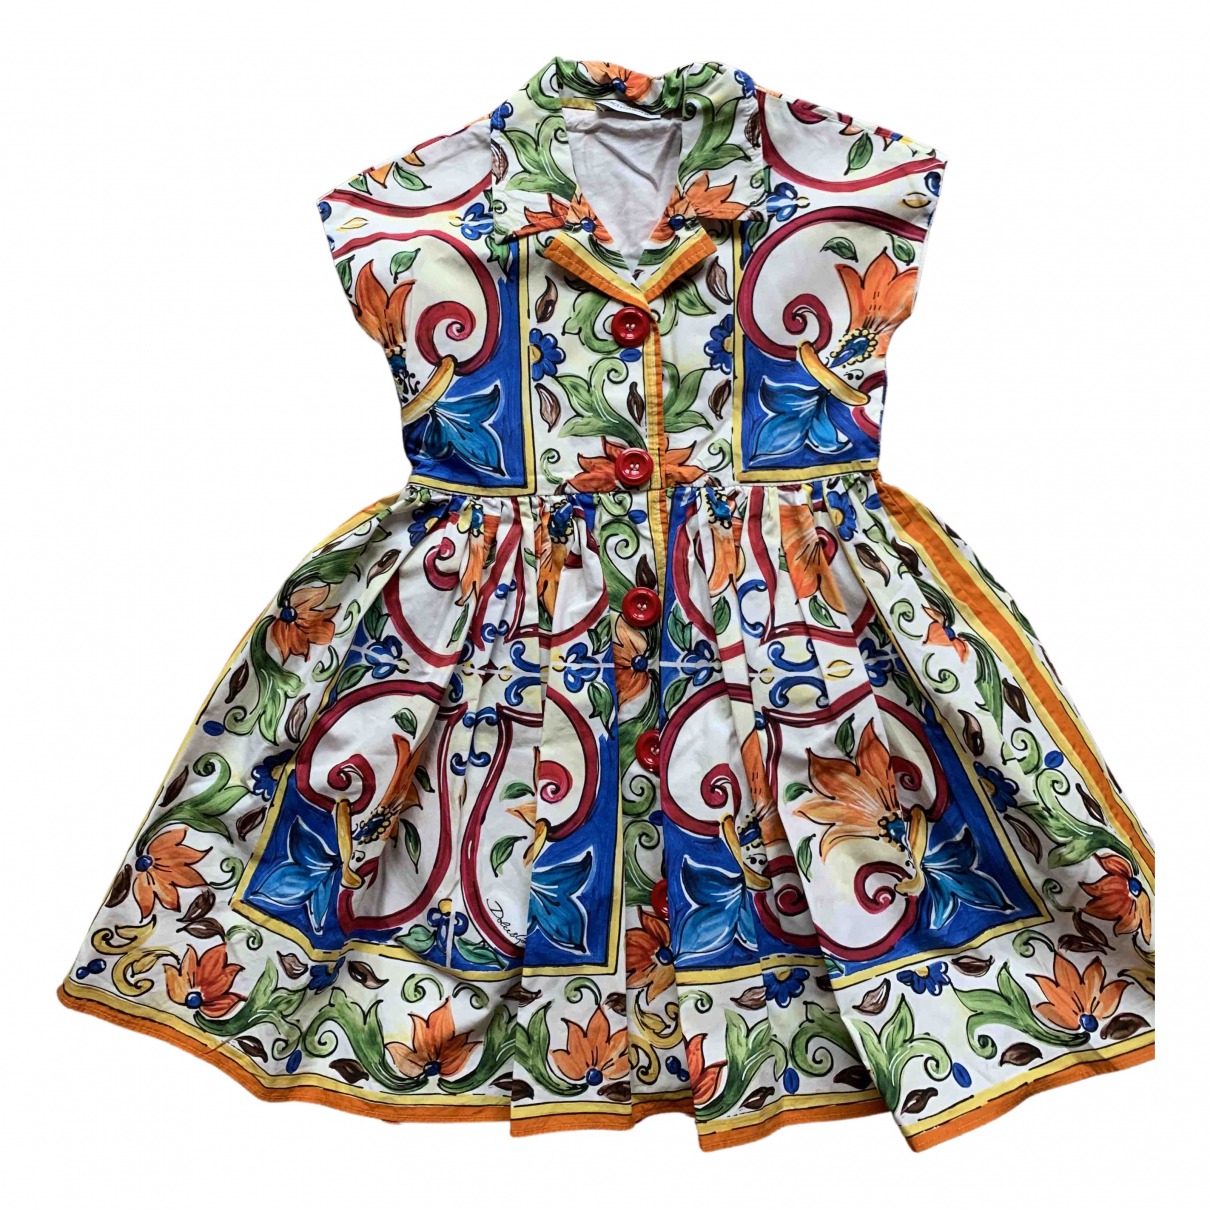 Dolce & Gabbana N Multicolour Cotton dress for Kids 4 years - until 40 inches UK